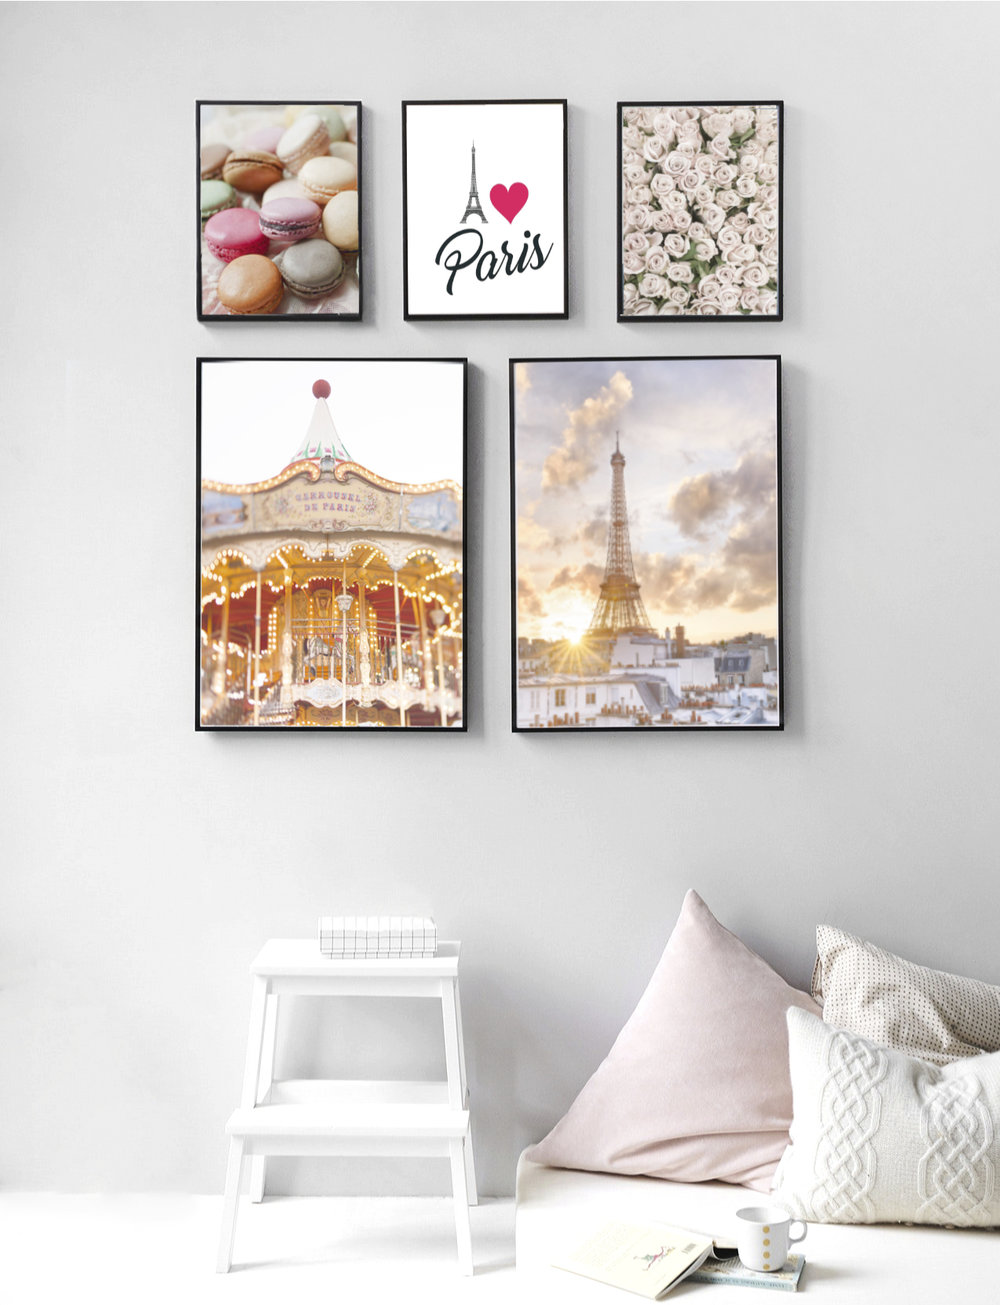 This could be the room of a teenage girl who dreams of going to Paris.